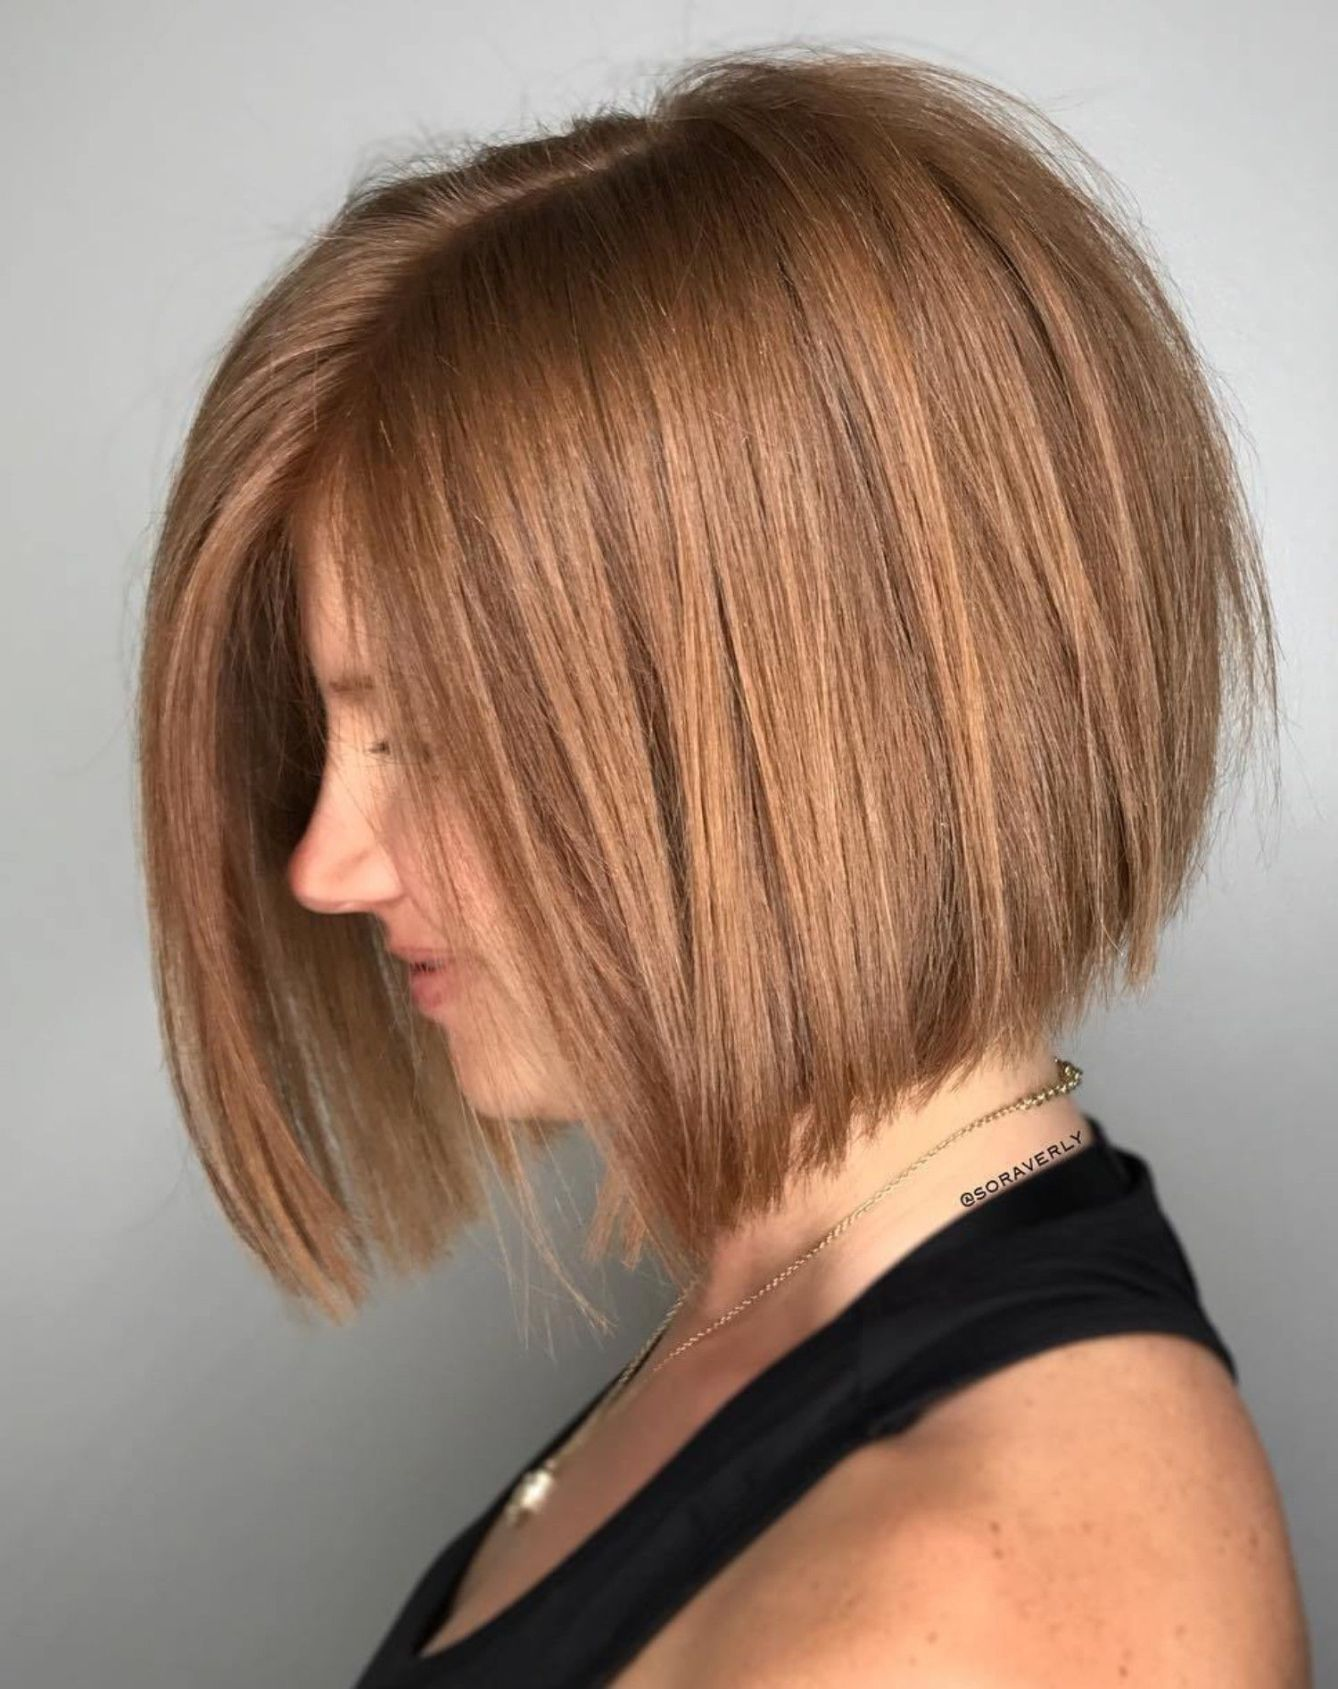 11 Mind-Blowing Short Hairstyles for Fine Hair  Straight